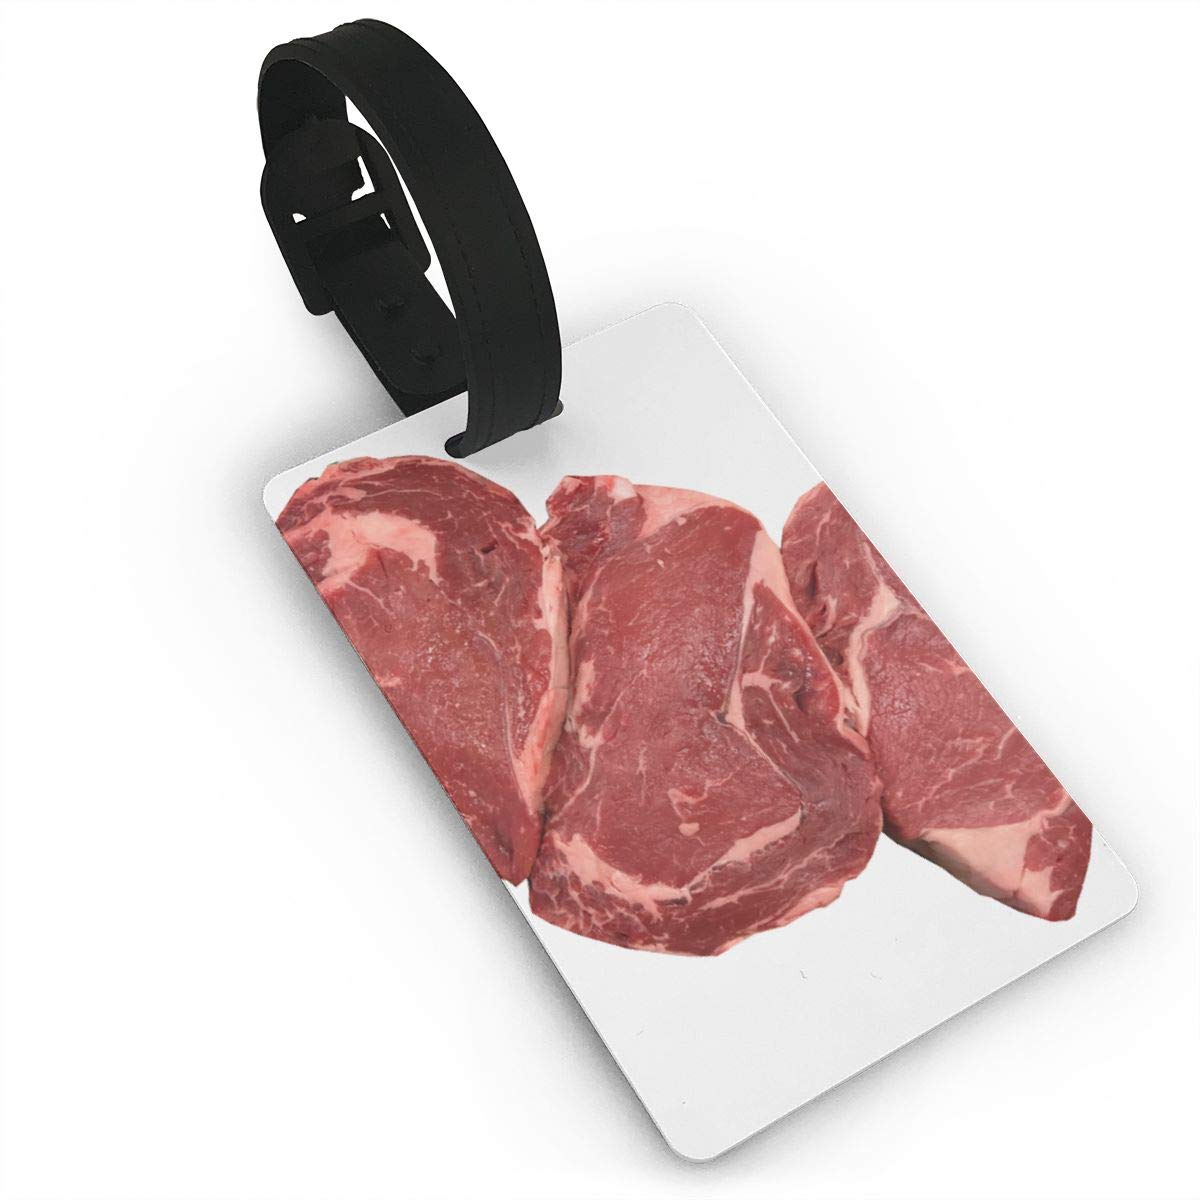 Beef Pork Meat Luggage Tags Bag Travel Labels For Baggage Suitcase